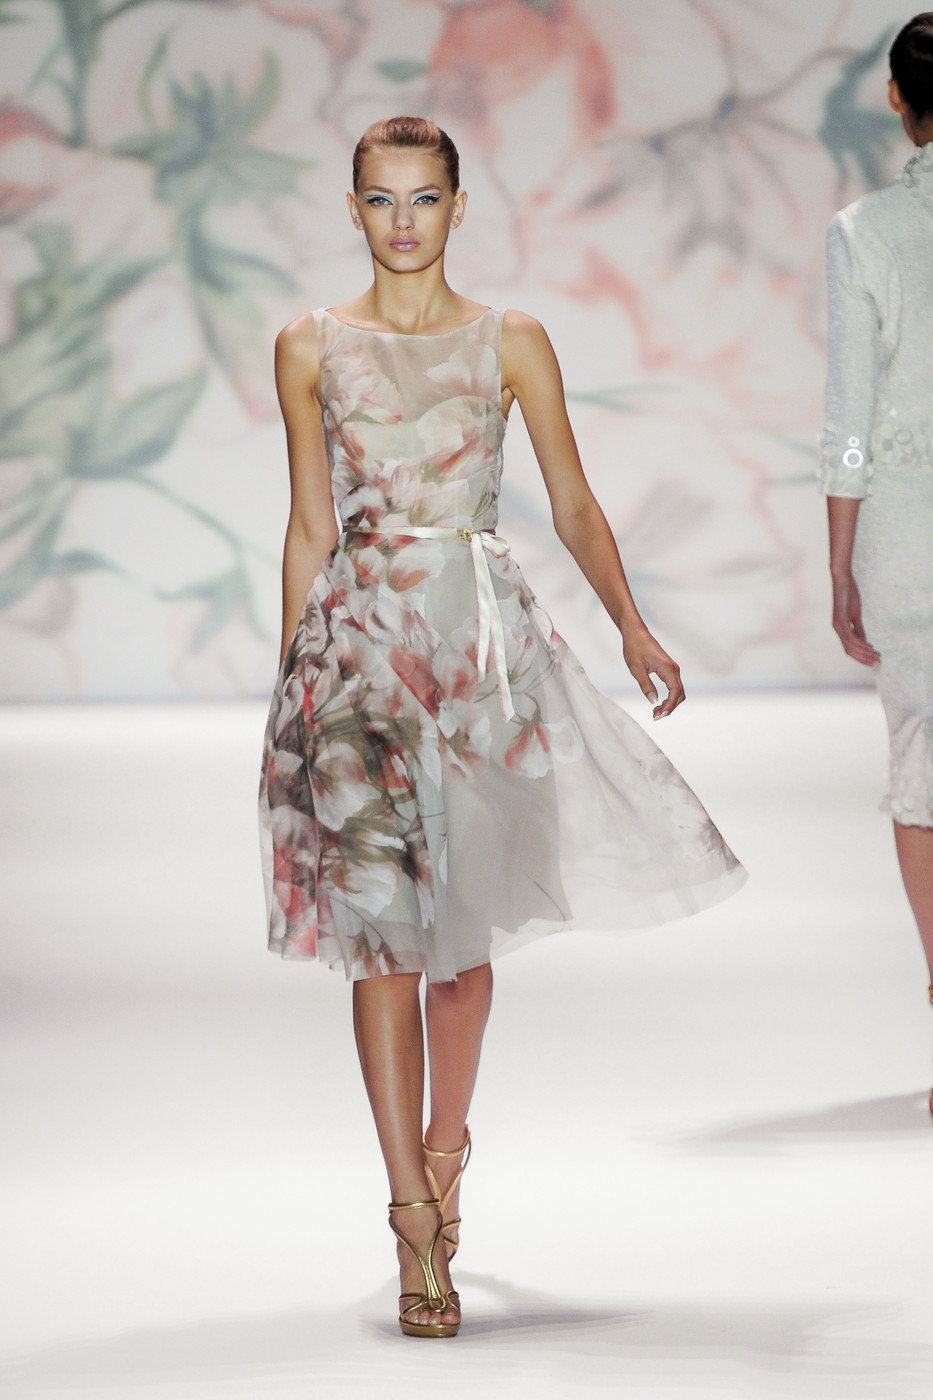 via fashioned by love | Monique Lhuillier Spring/Summer 2011 | floral trend